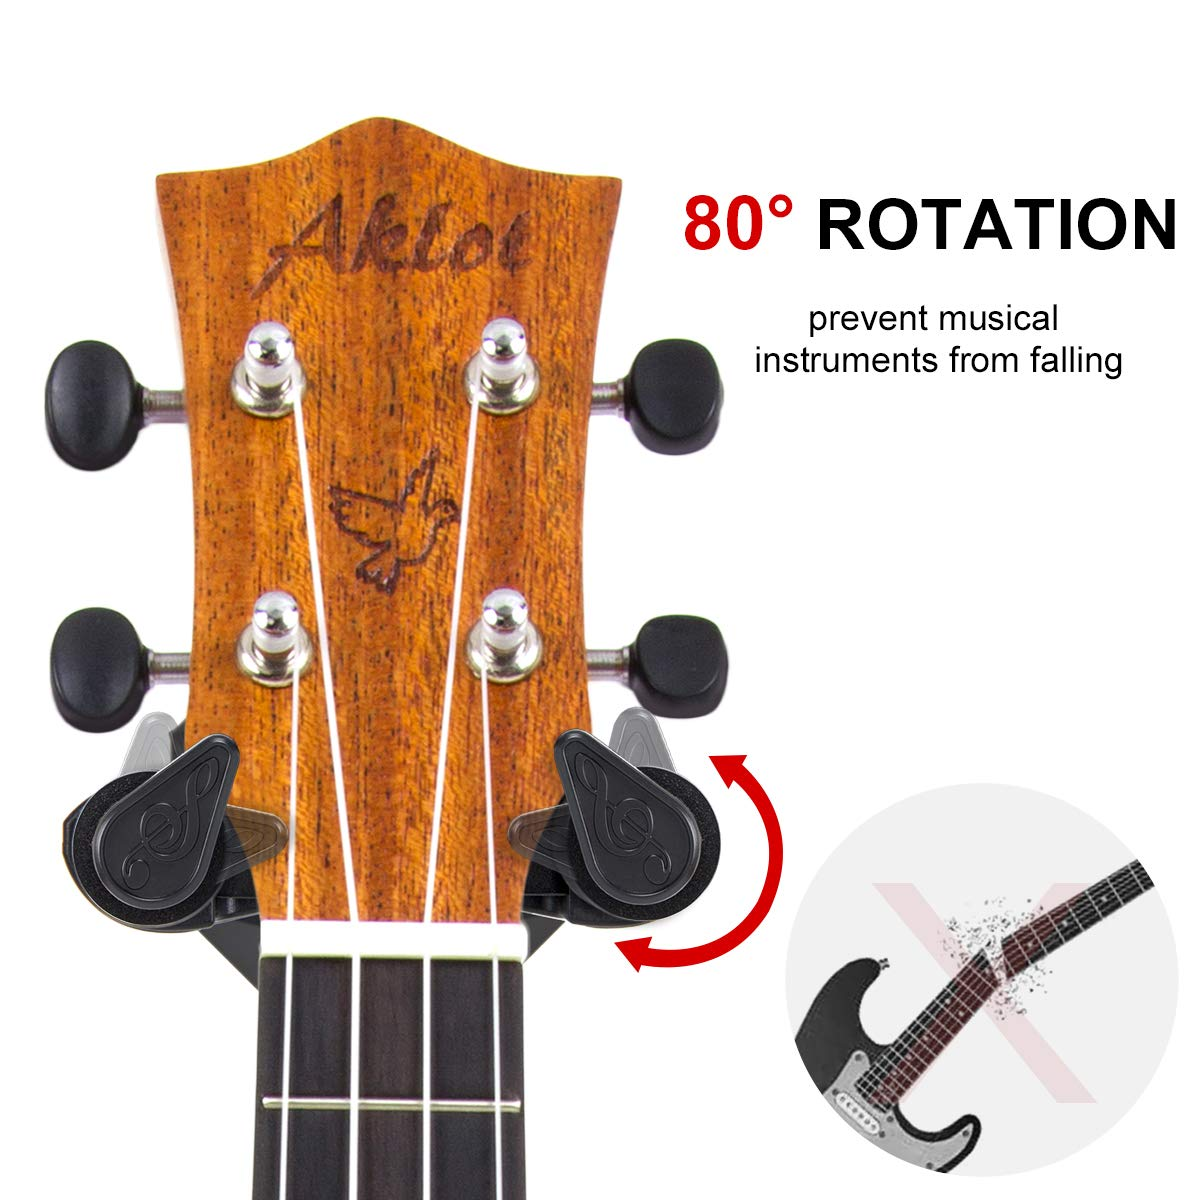 Ukulele Hanger Wall Mount Hook Holder For Ukelele Guitar Banjo With